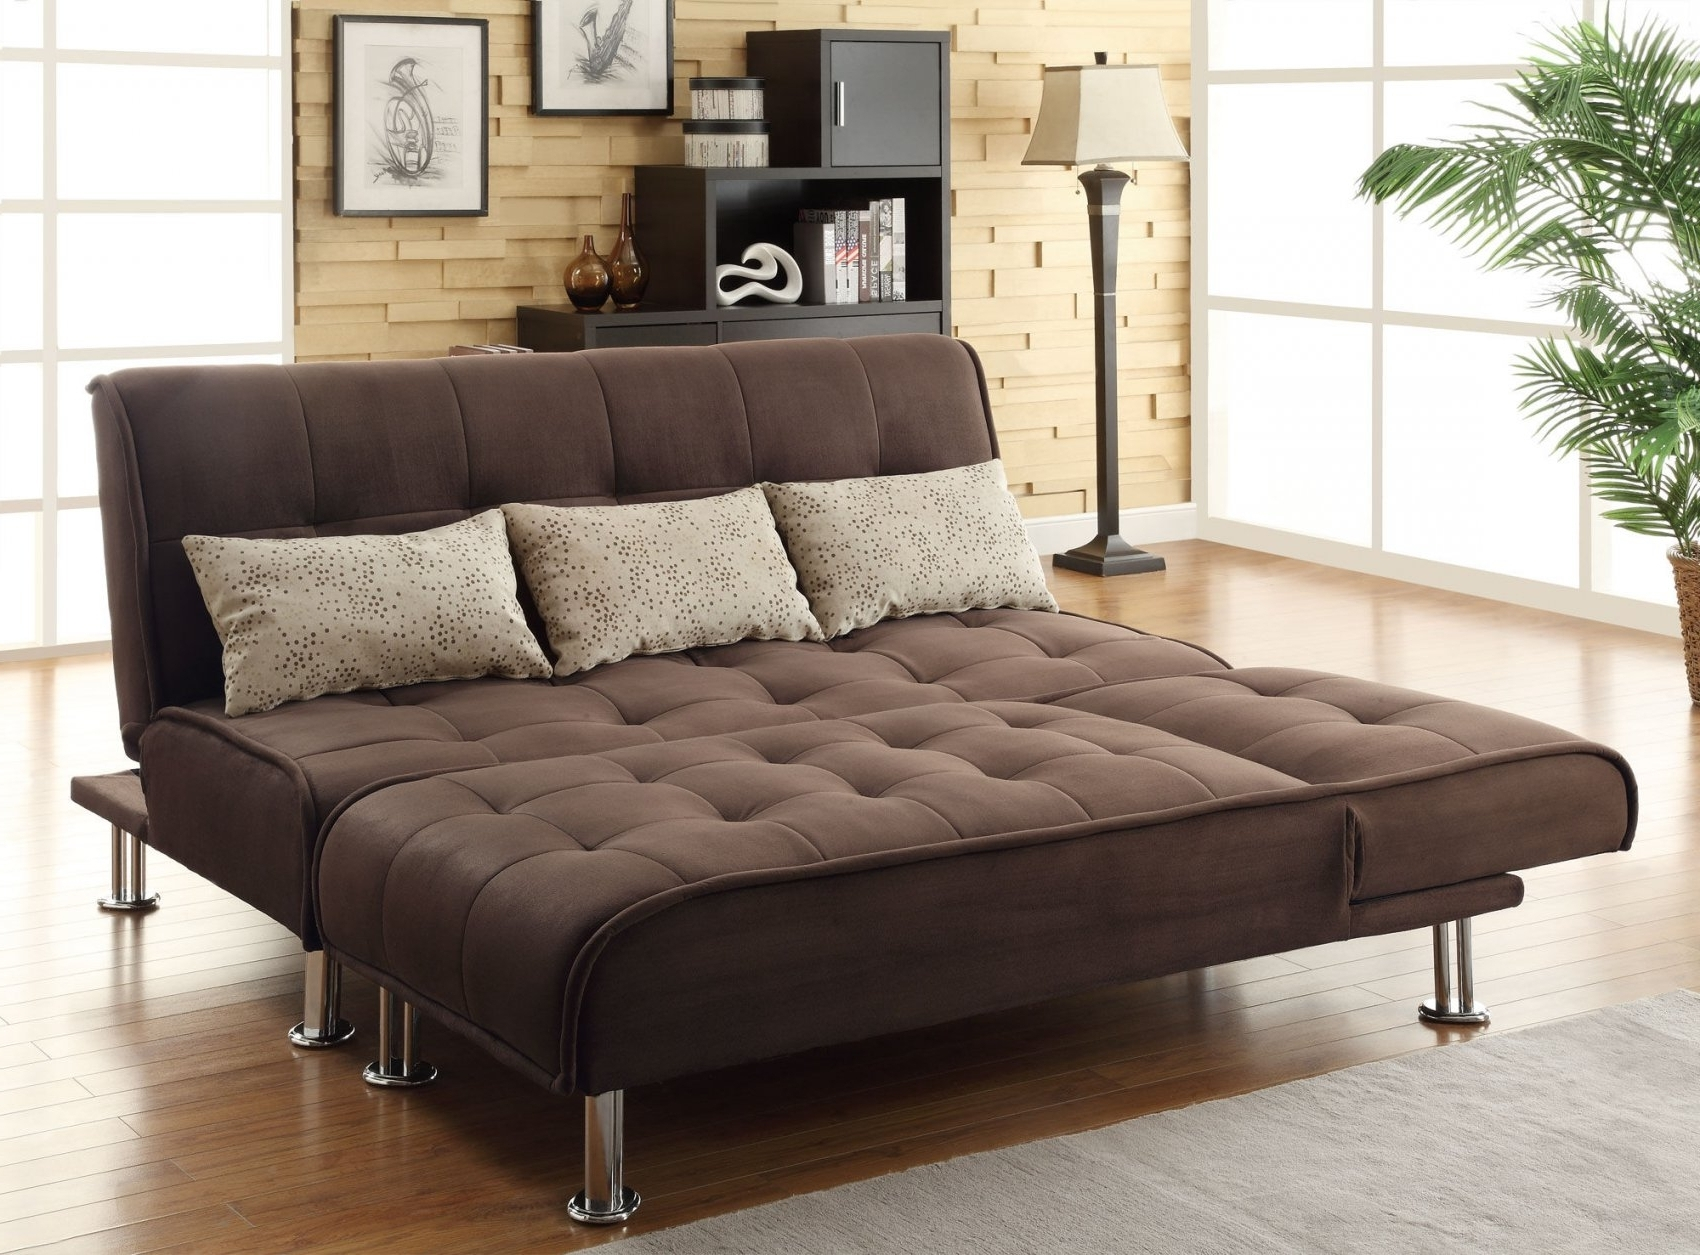 Queen Size Convertible Sofa Bed 46 About Remodel Pepperfry Regarding Latest Queen Size Sofas (View 9 of 15)